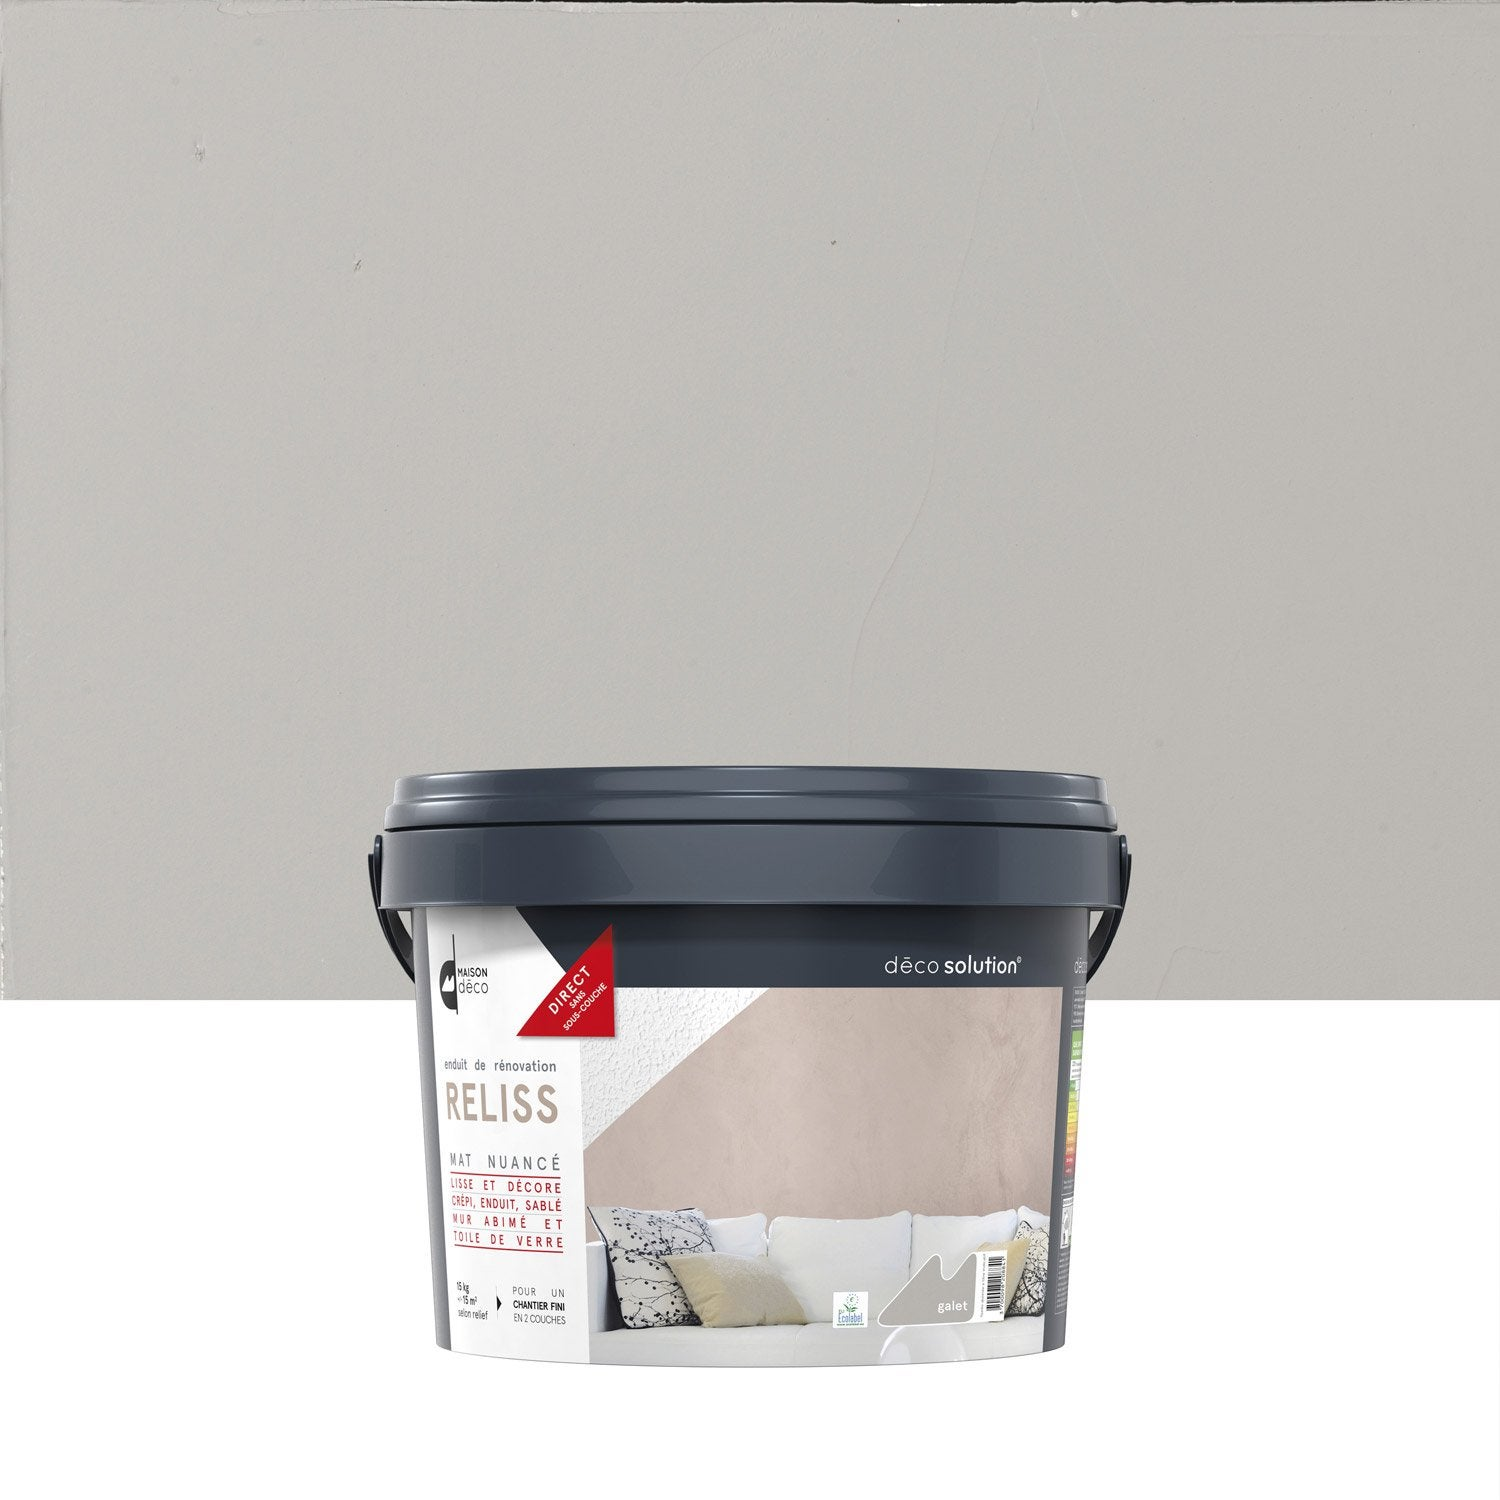 Enduit d coratif reliss 2 en 1 maison deco galet 15 kg for Enduit decoratif mur interieur